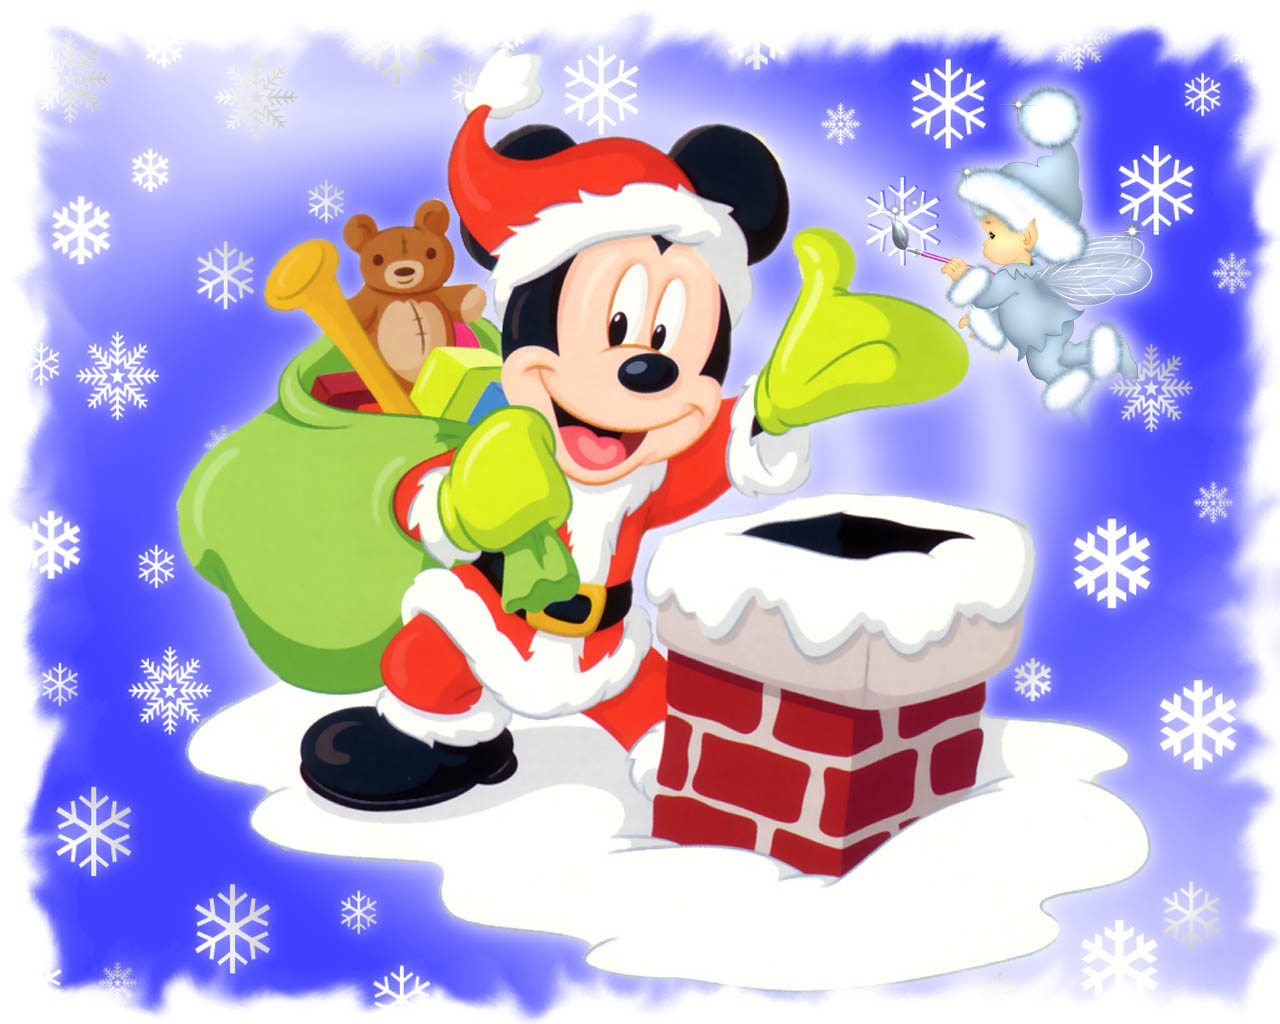 HD Wallpapers Mickey Mouse Santa